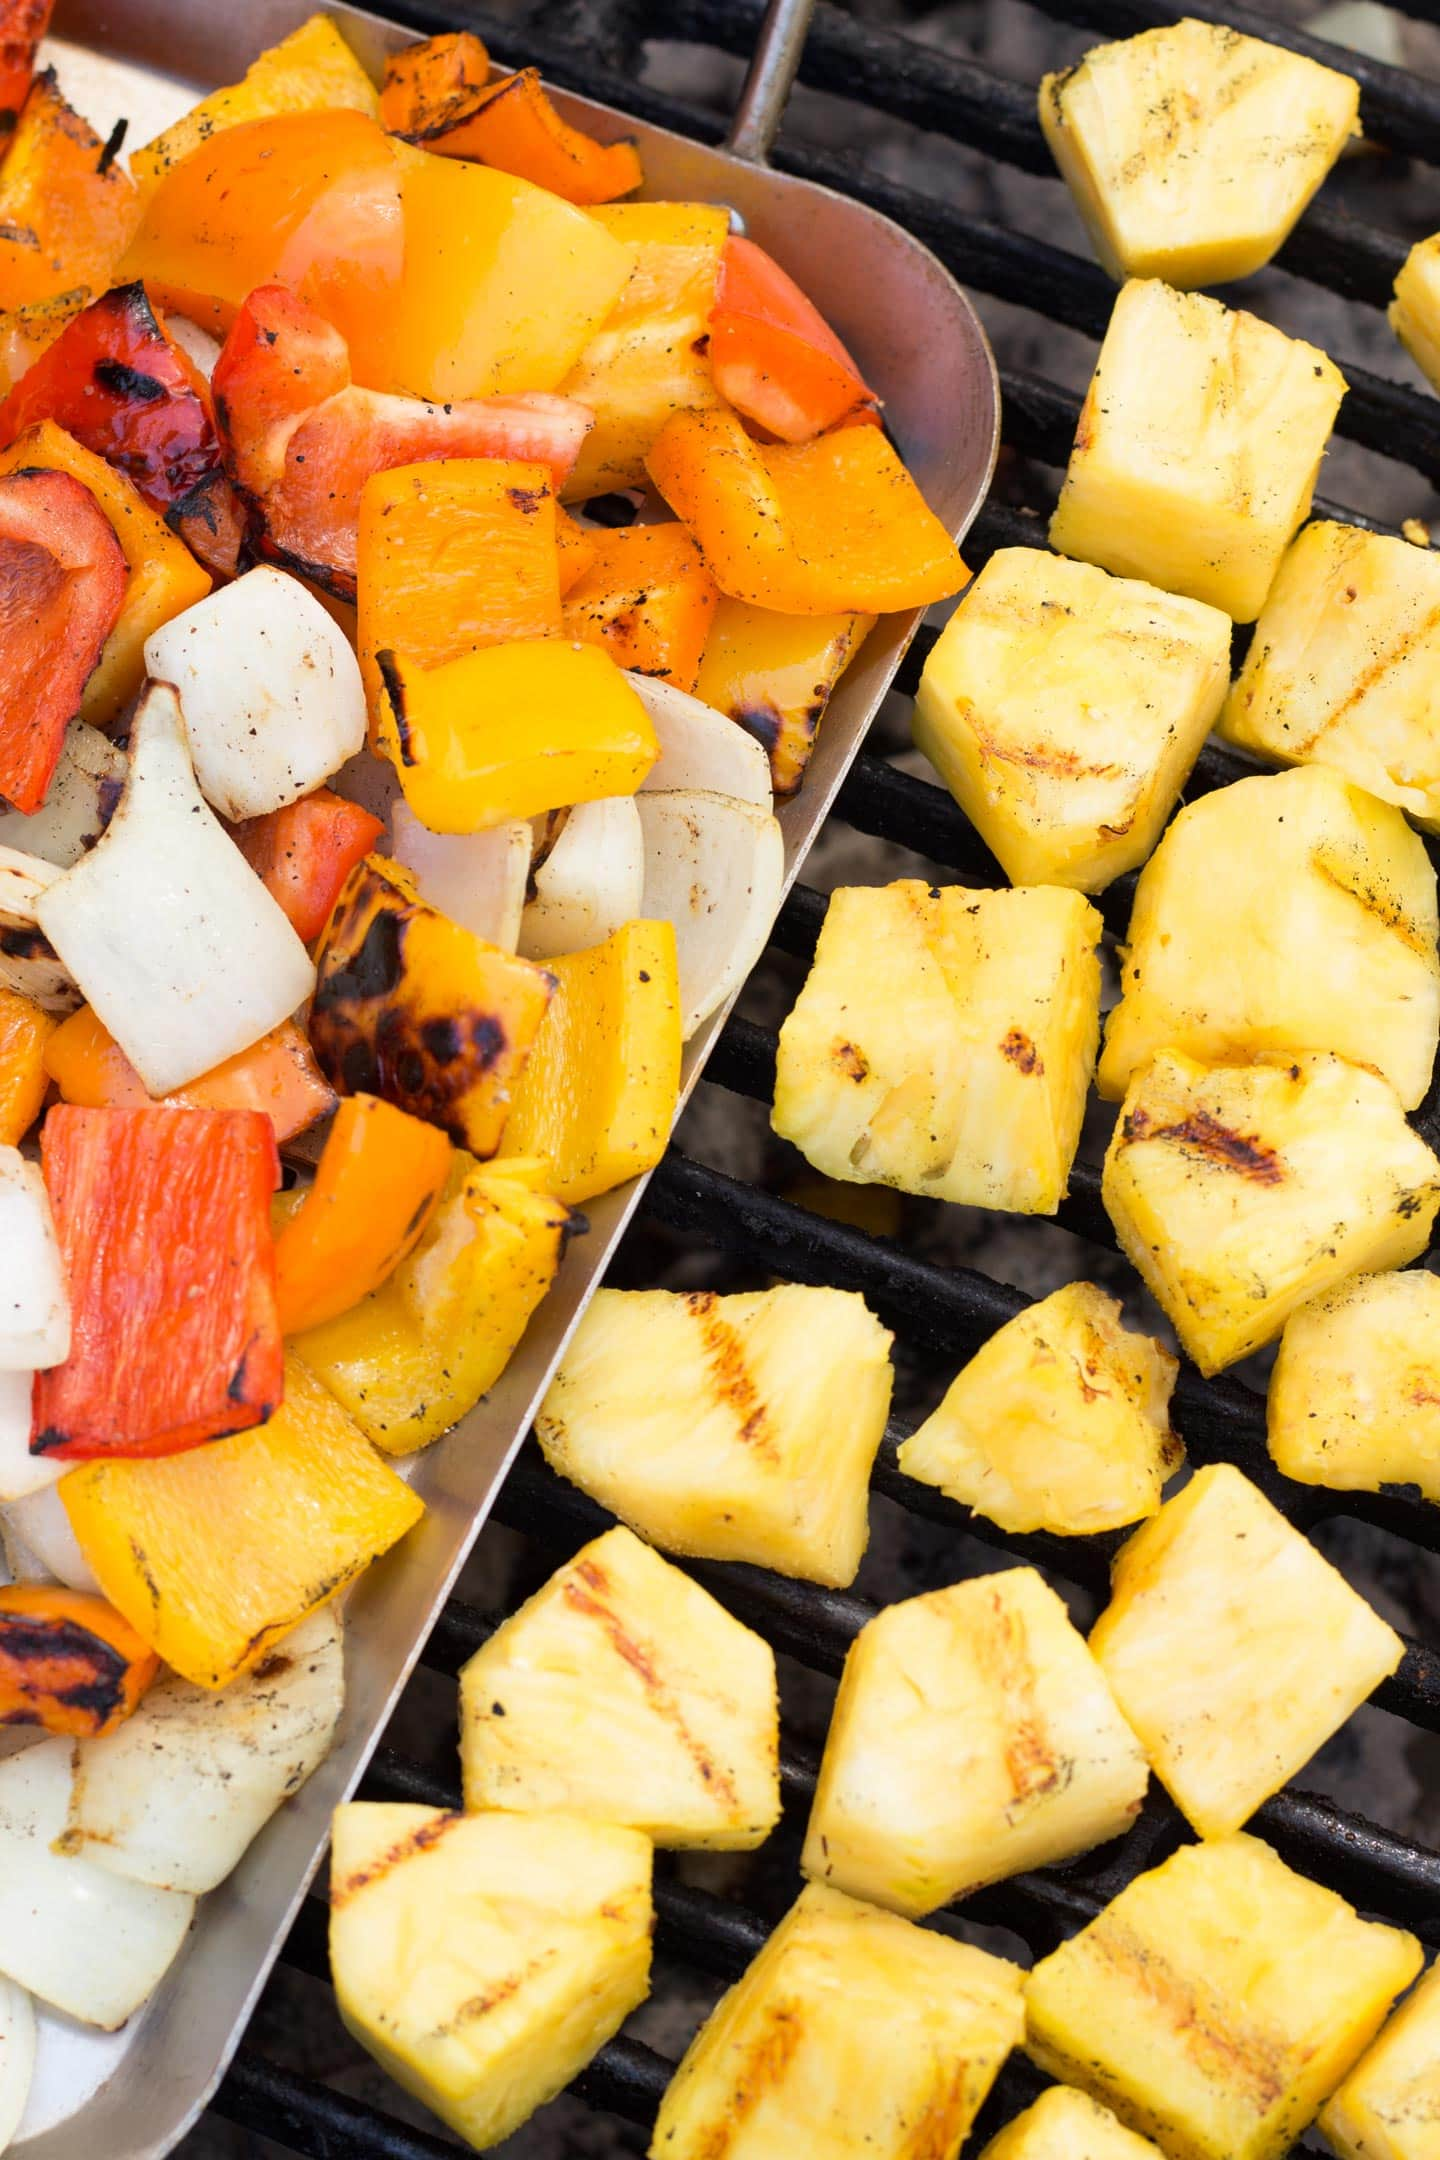 Pineapple and veggies on the grill